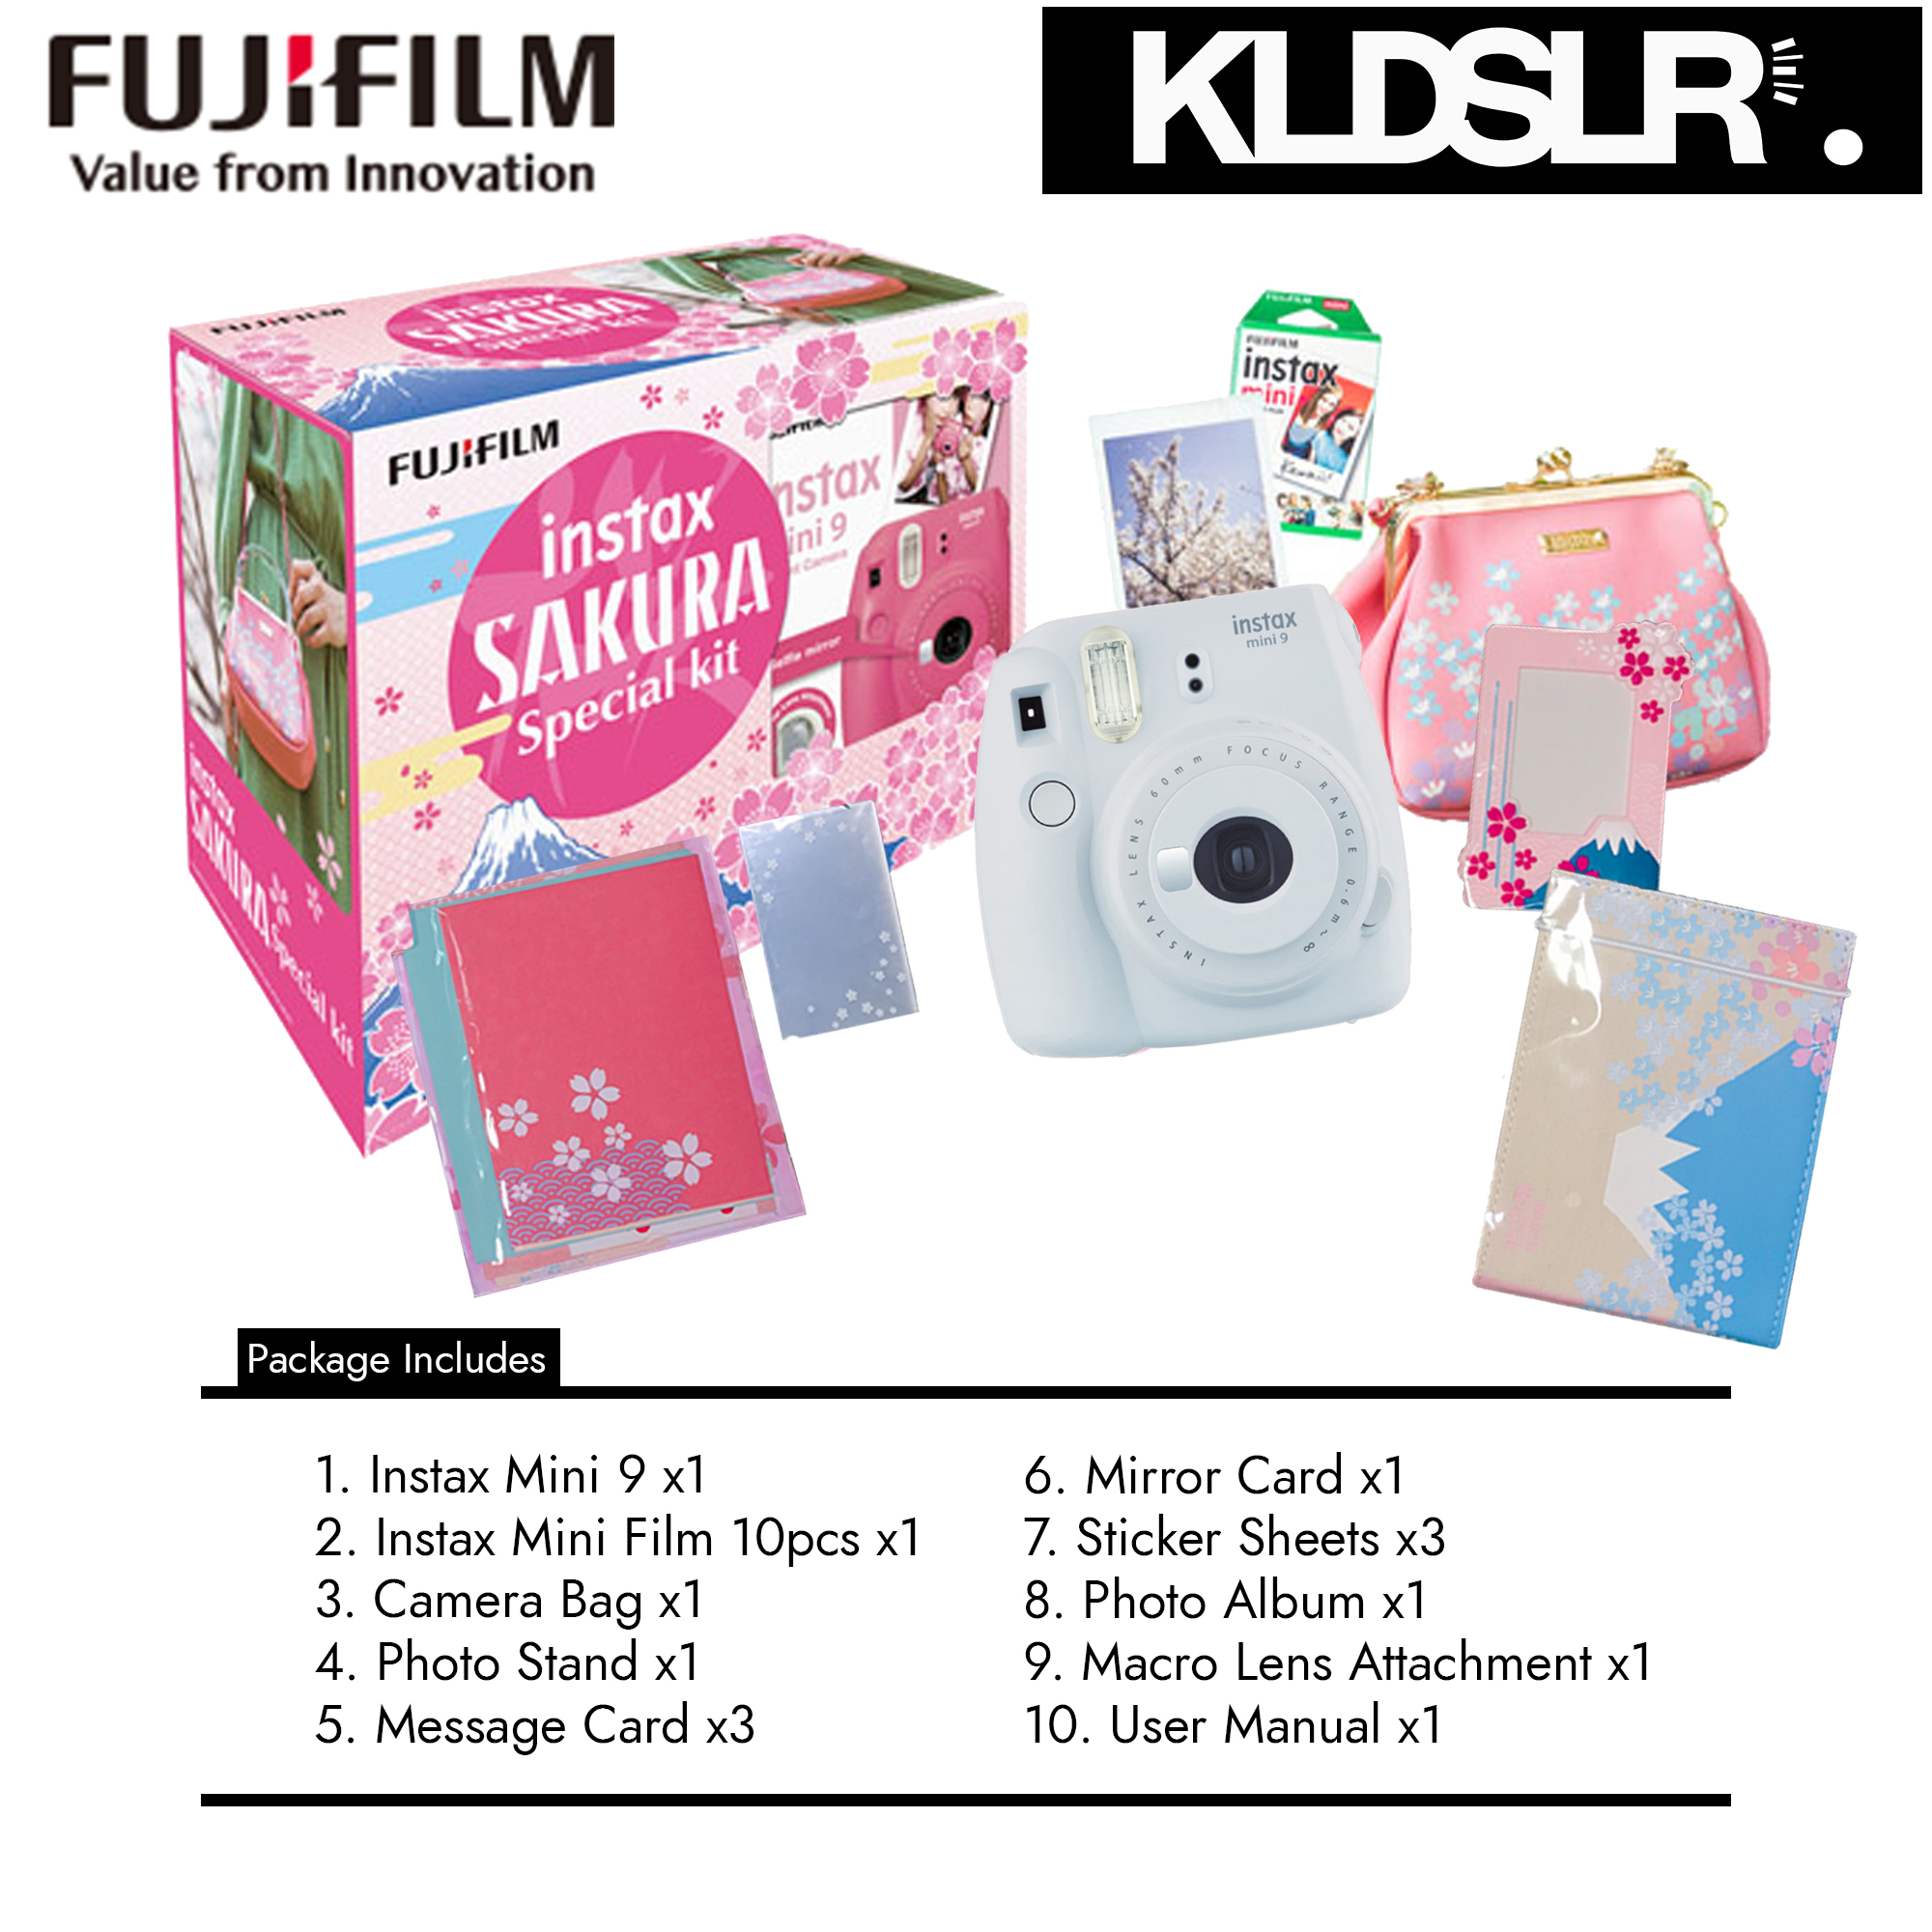 Cybermonday Fujifilm Instax Mini 9 Instant Camera Polaroid Sakura X T2 Body Black Pwp Xf 23mm F 14 Package Buy 1 Free 7 Bundle Smoky White Malaysia